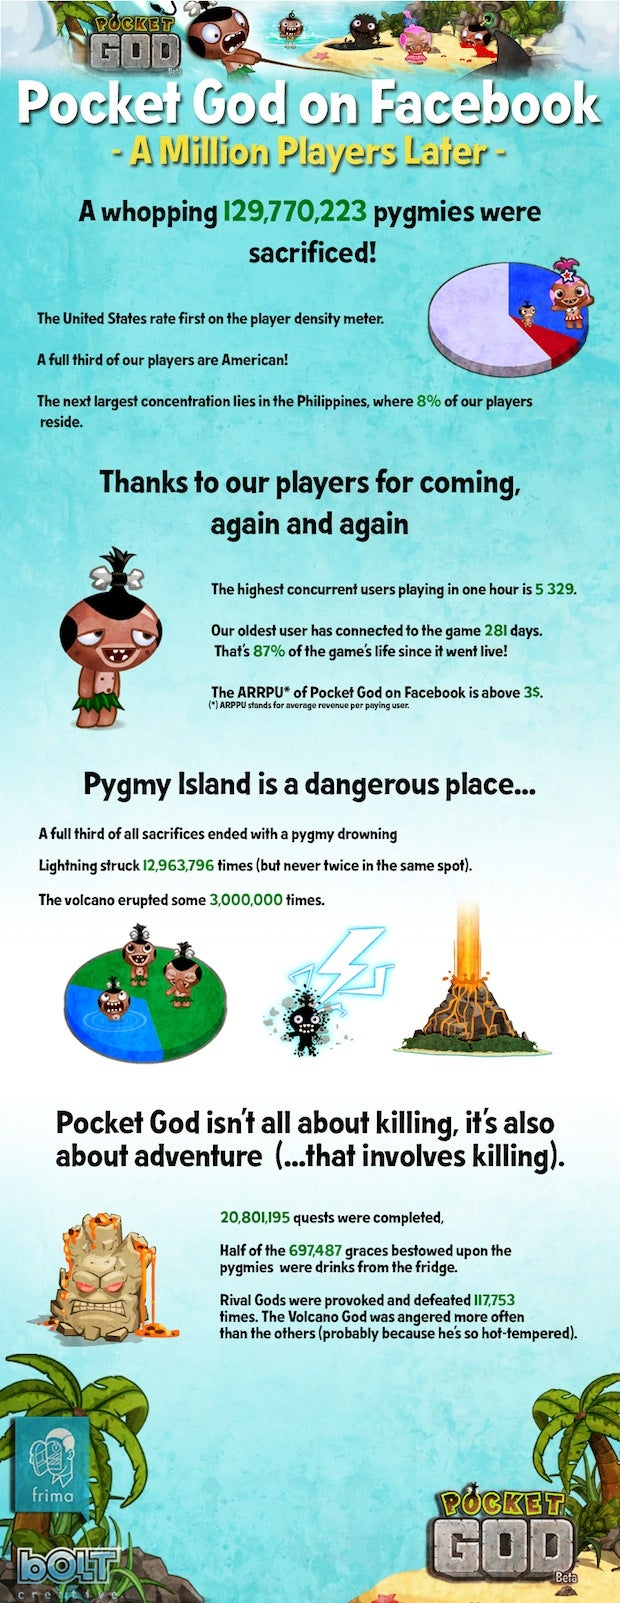 129,770,223 Virtual Pygmies Have Been Sacrificed in the Facebook Version of Pocket God